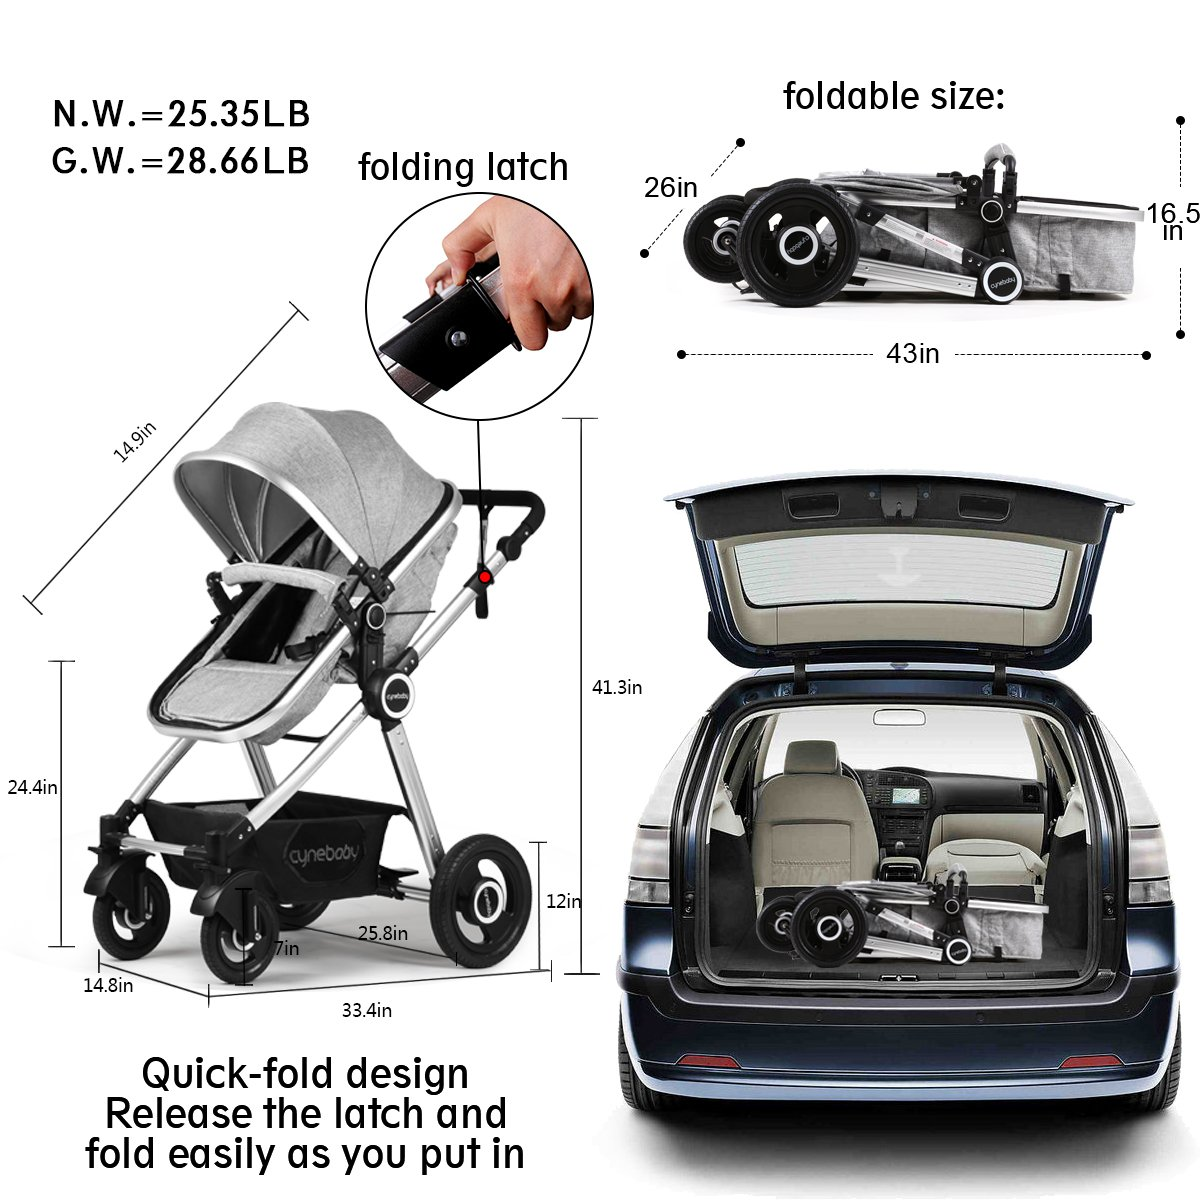 Infant Toddler Stroller Folding Convertible Carriage Infant Anti-Shock High View Luxury Baby Stroller Newborn Pram Stroller Pushchair Stroller for Babies(Light Camel) by Cynebaby (Image #9)